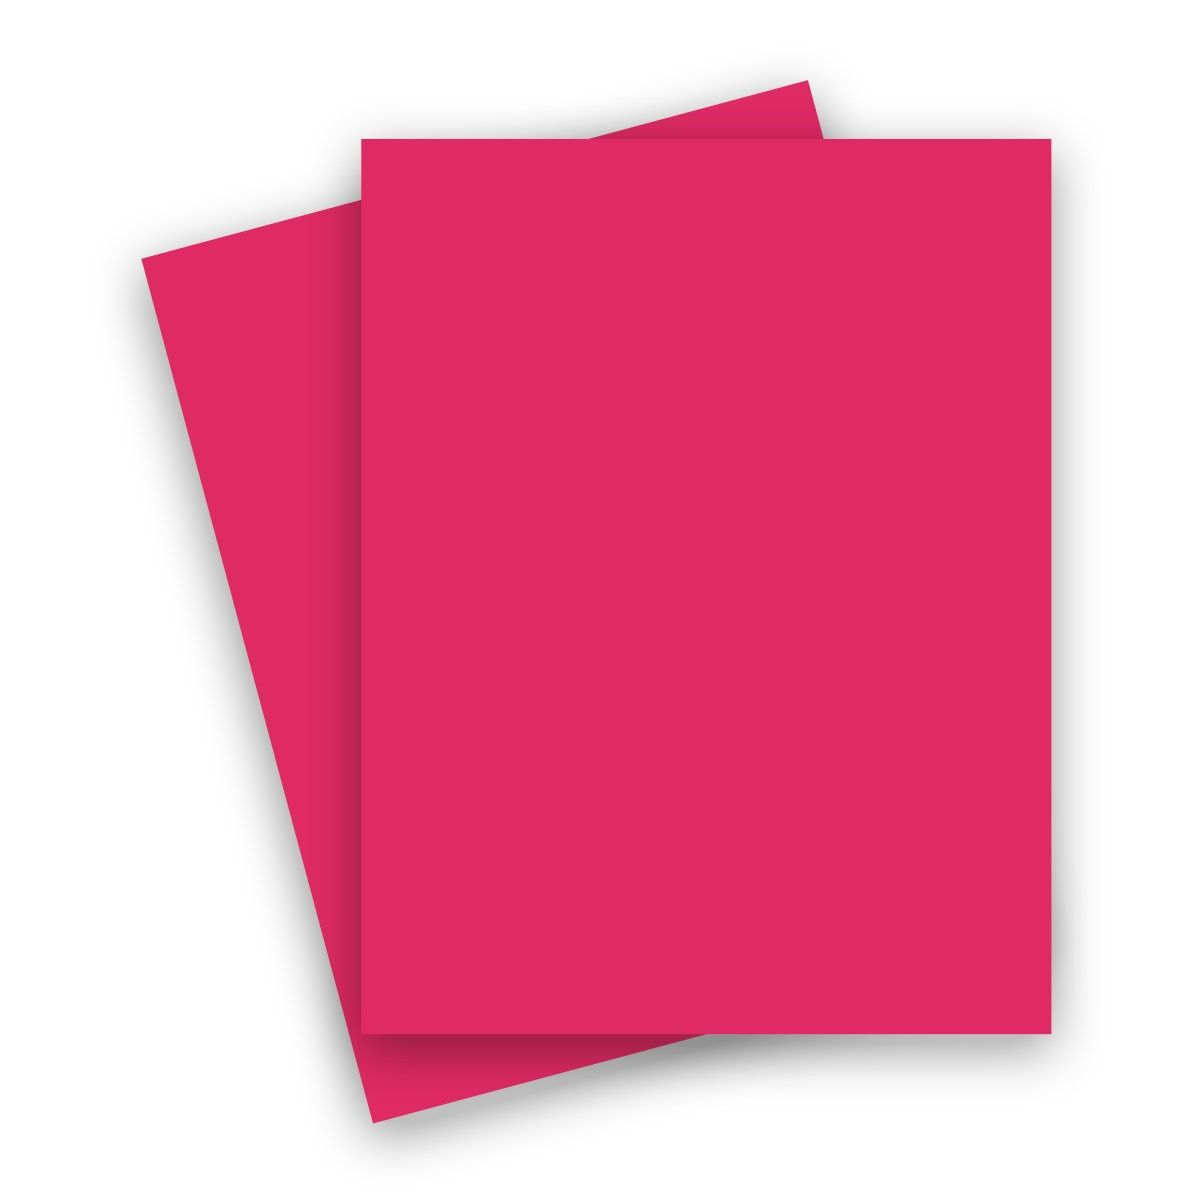 Curious Skin Pink 8 5 X 11 Card Stock Paper 100lb Cover 25 Pk In 2021 Pink Paper Cardstock Paper Paper